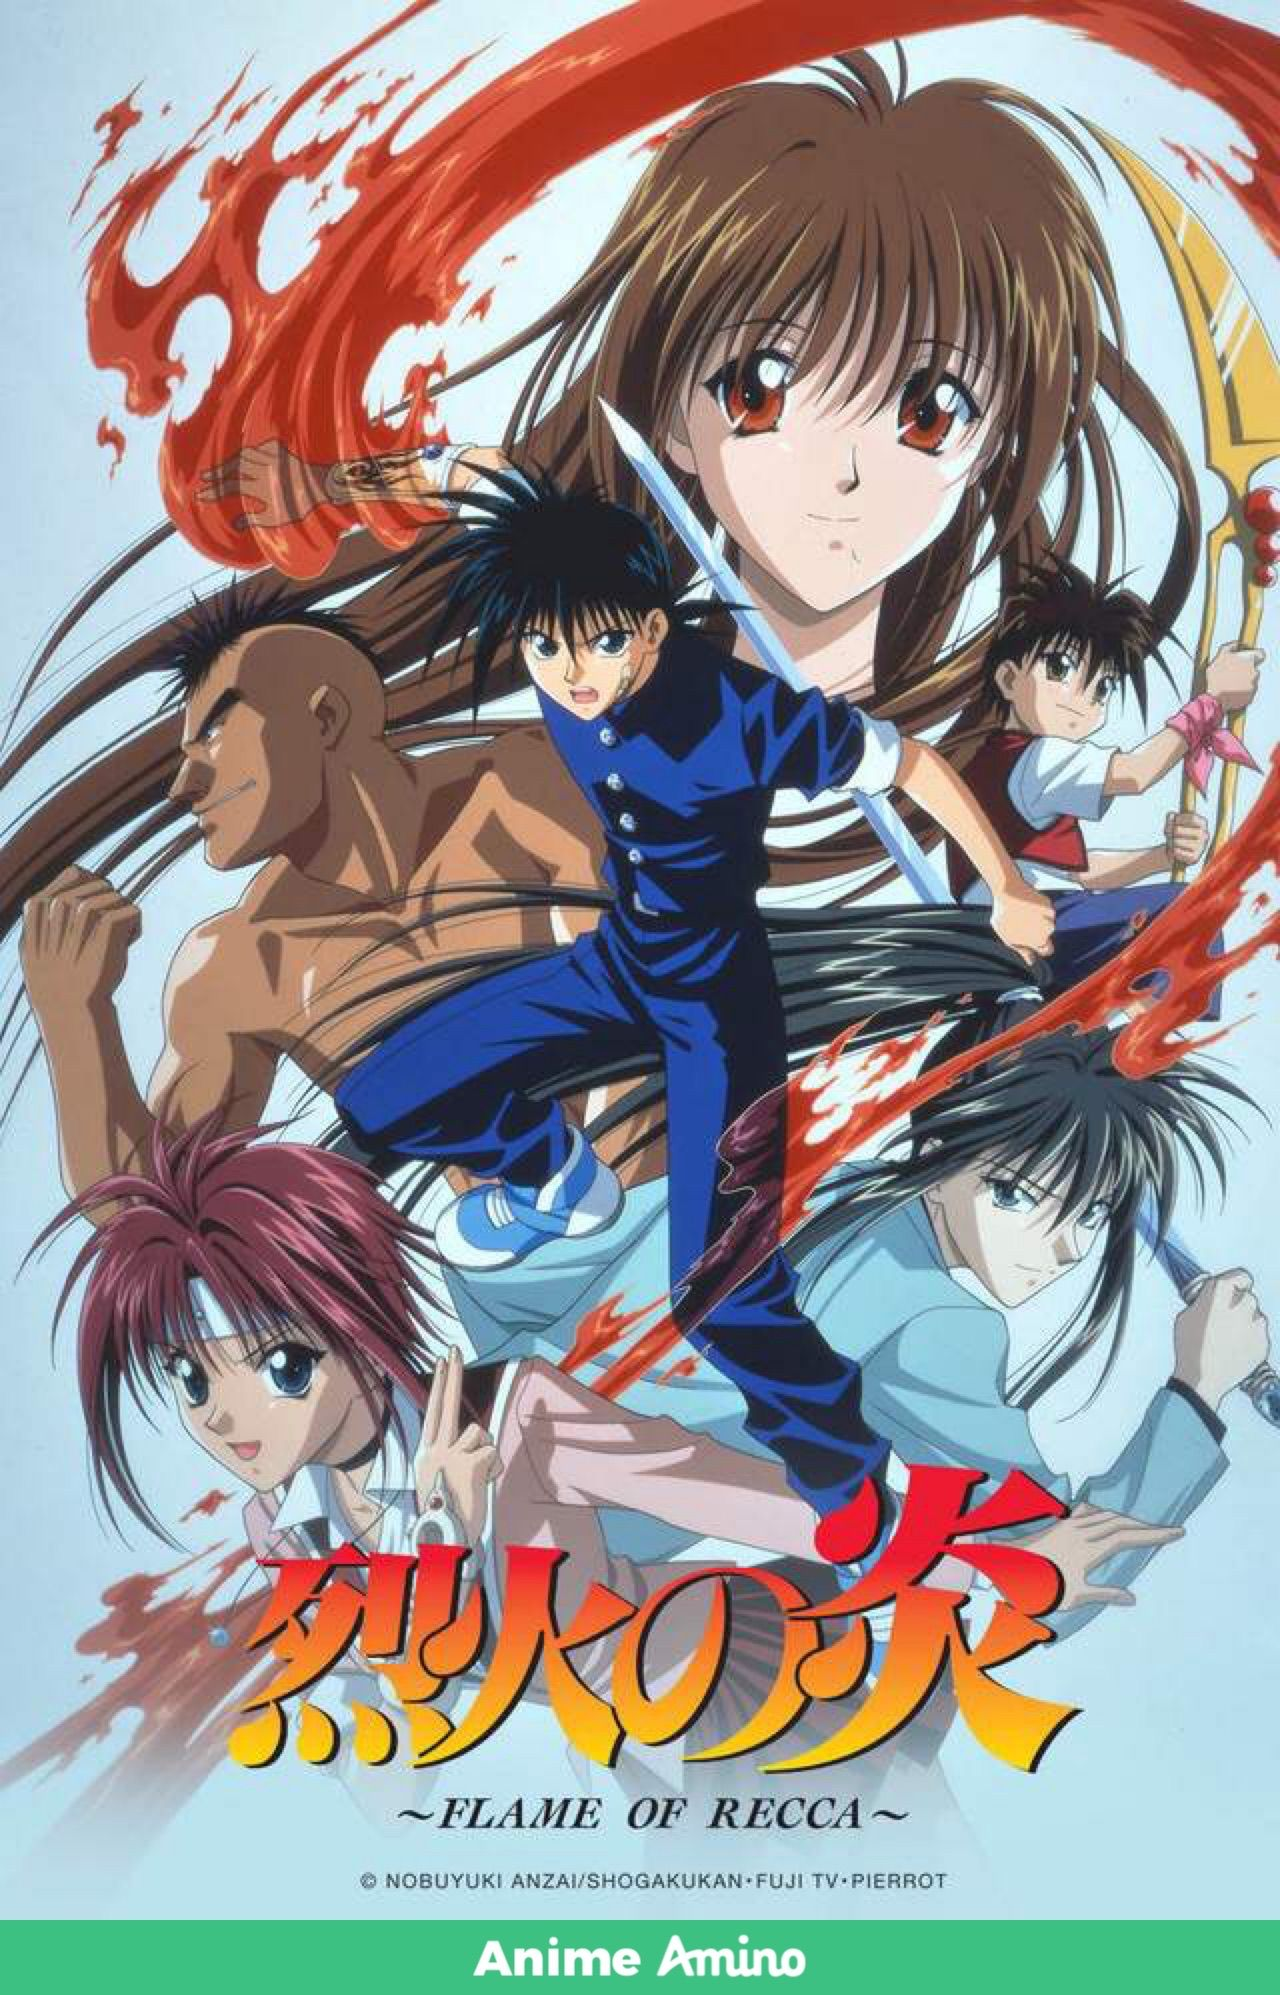 Pin By Chanel Aprahamian On Acg Wallpapers In 2020 Flame Of Recca Anime Popular Anime